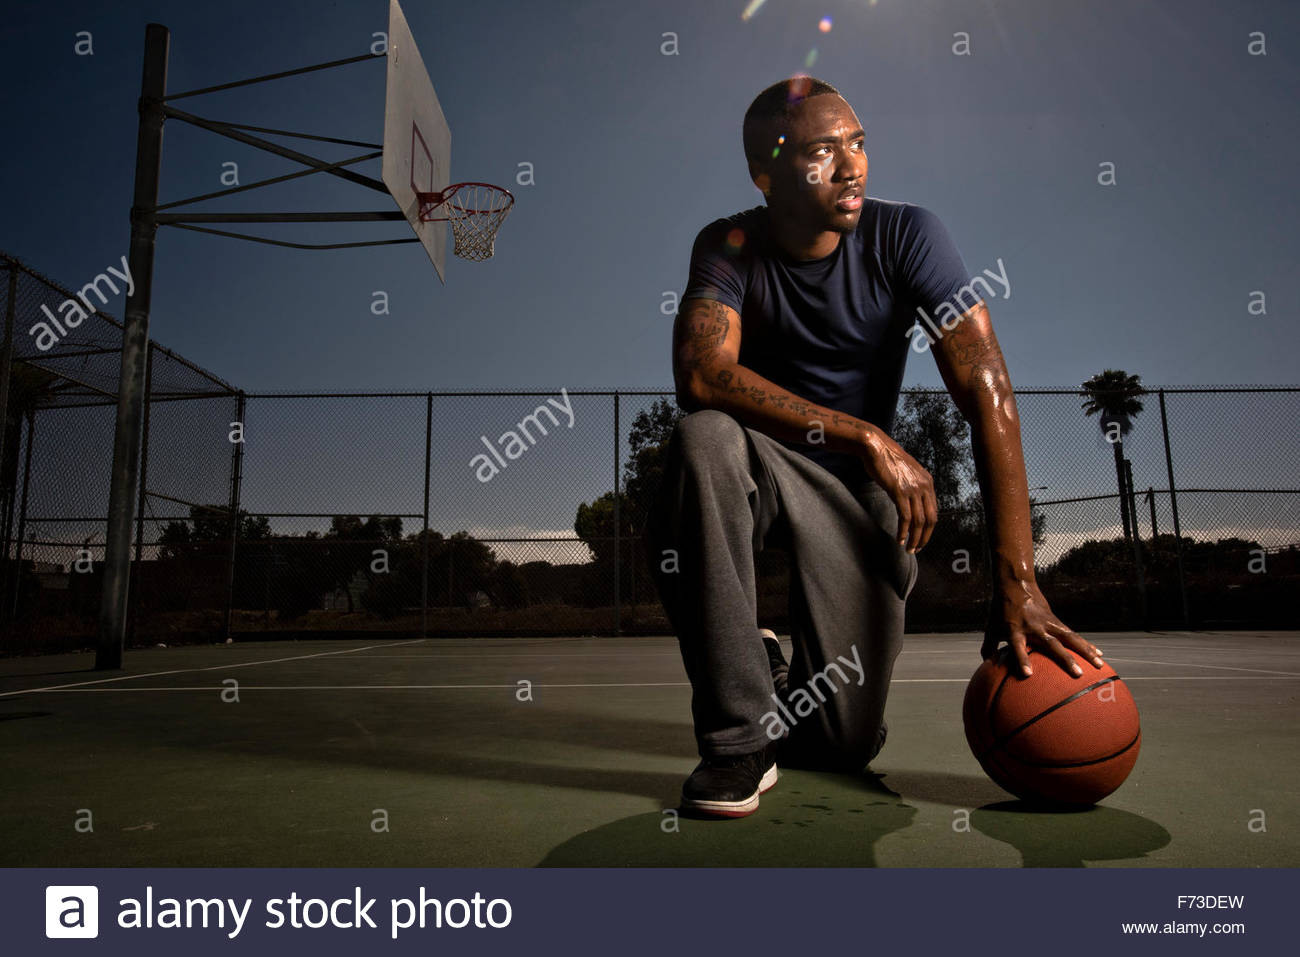 A basketball player player rests on the court after a game. - Stock Image